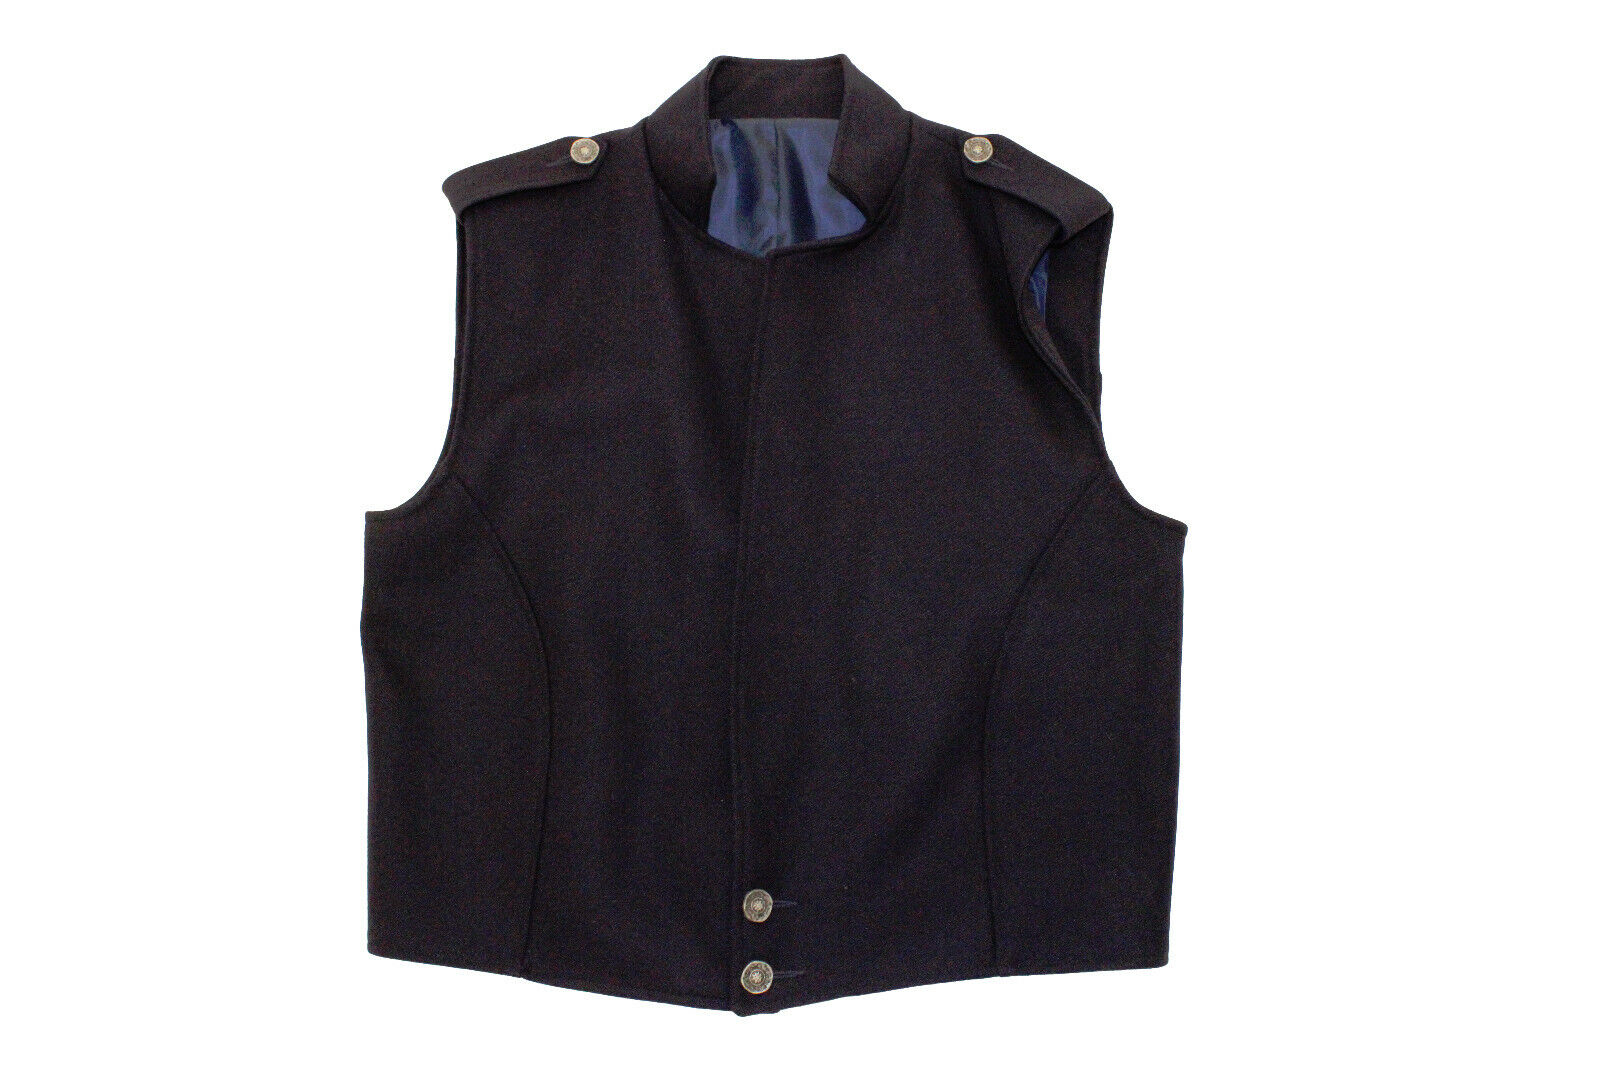 NEW Blue LOWLANDER Vest 100% Wool - WITH LAPELS - reduced to clear